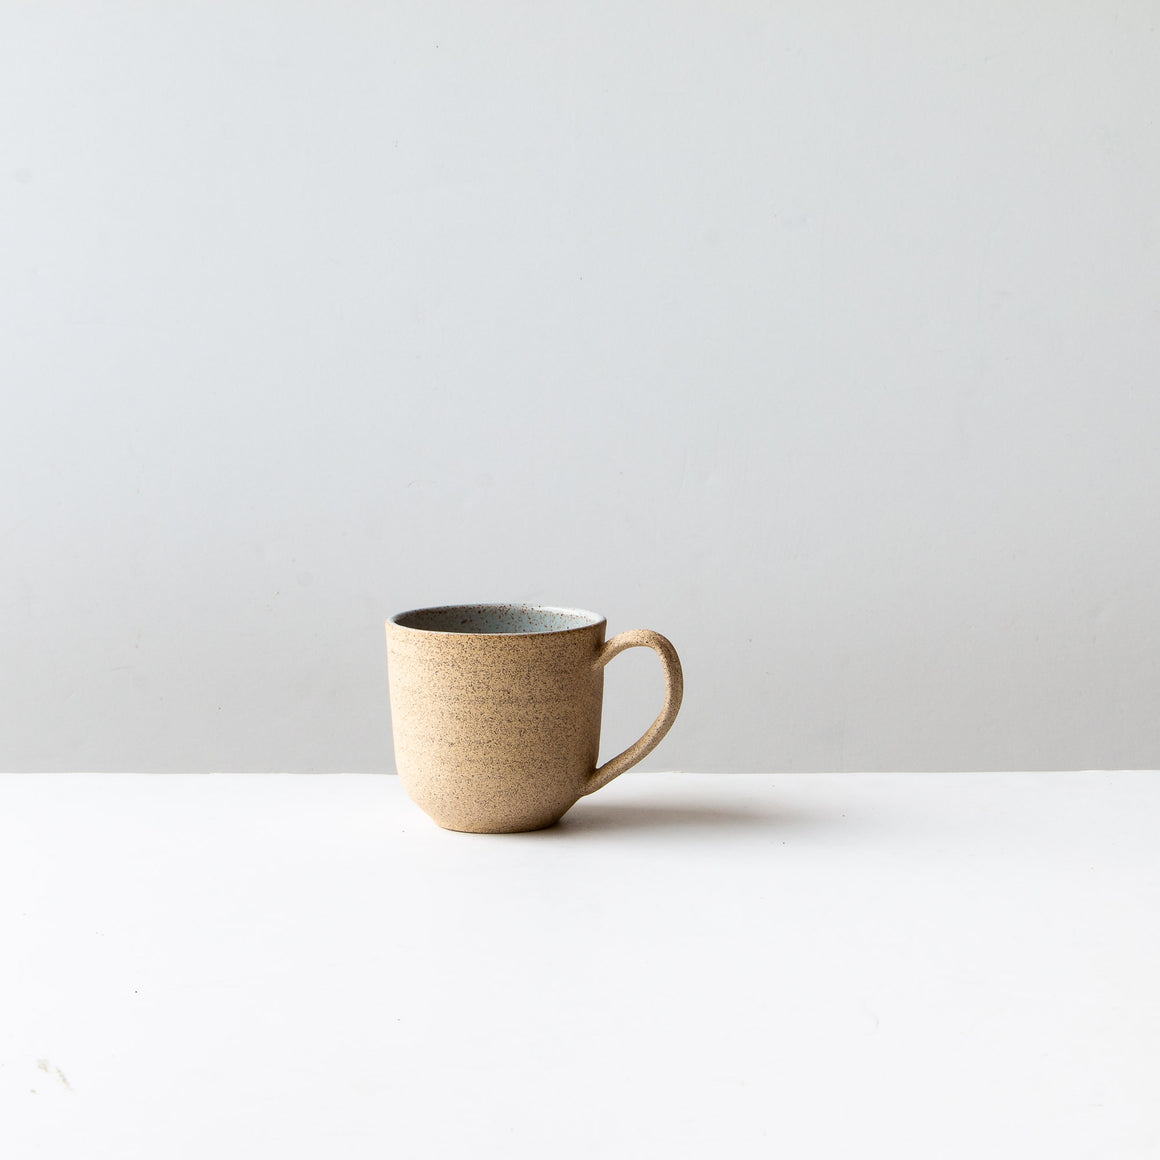 Speckled Stoneware Cup / Mug